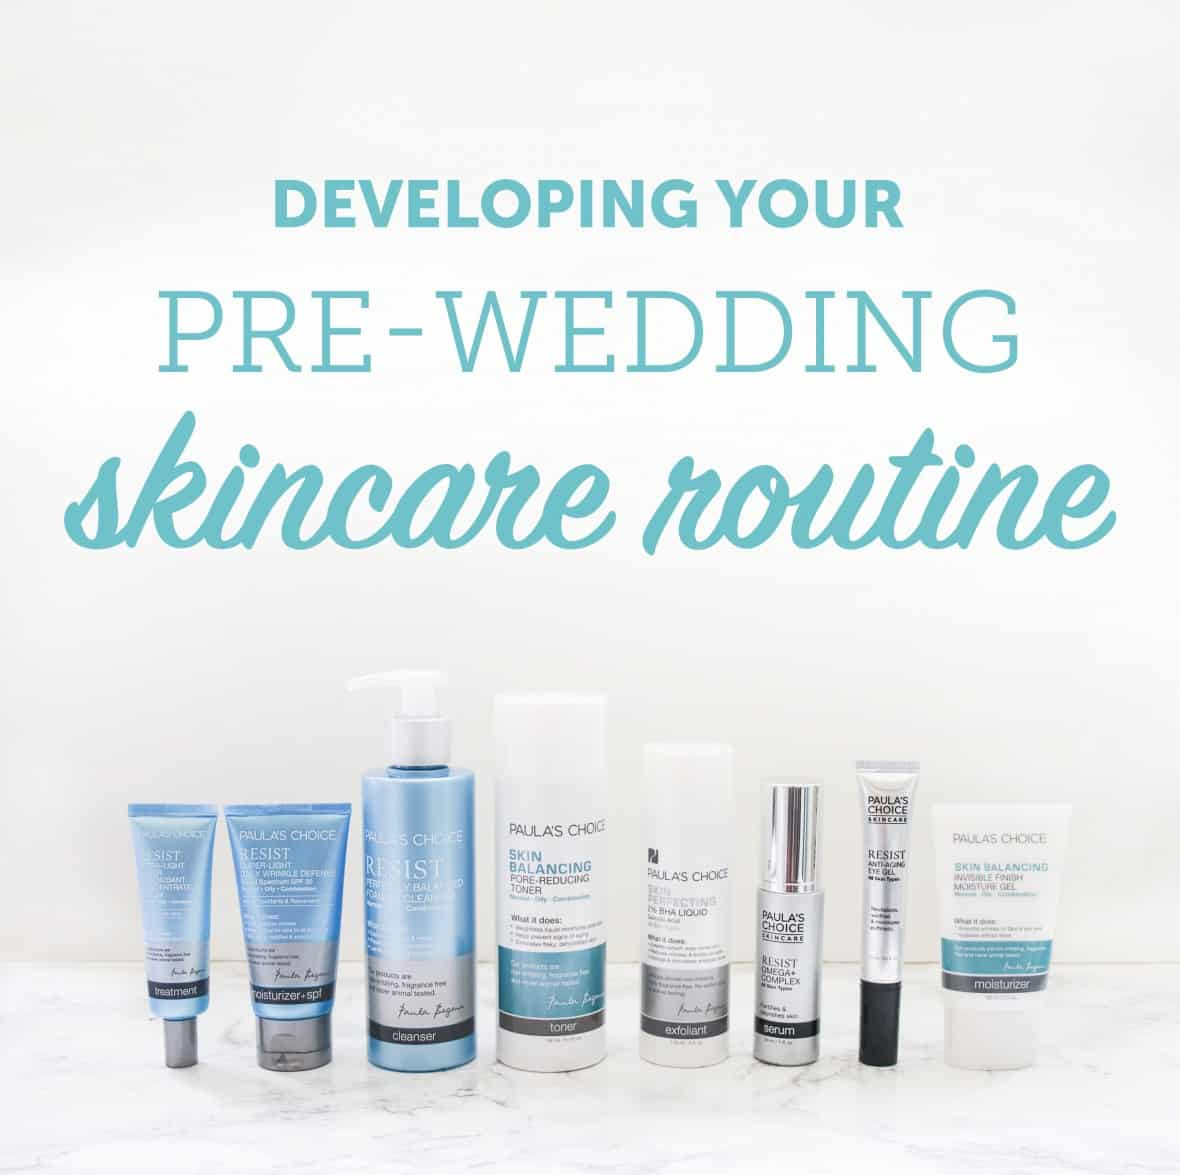 Paula's Choice Pre-Wedding Skincare Routine